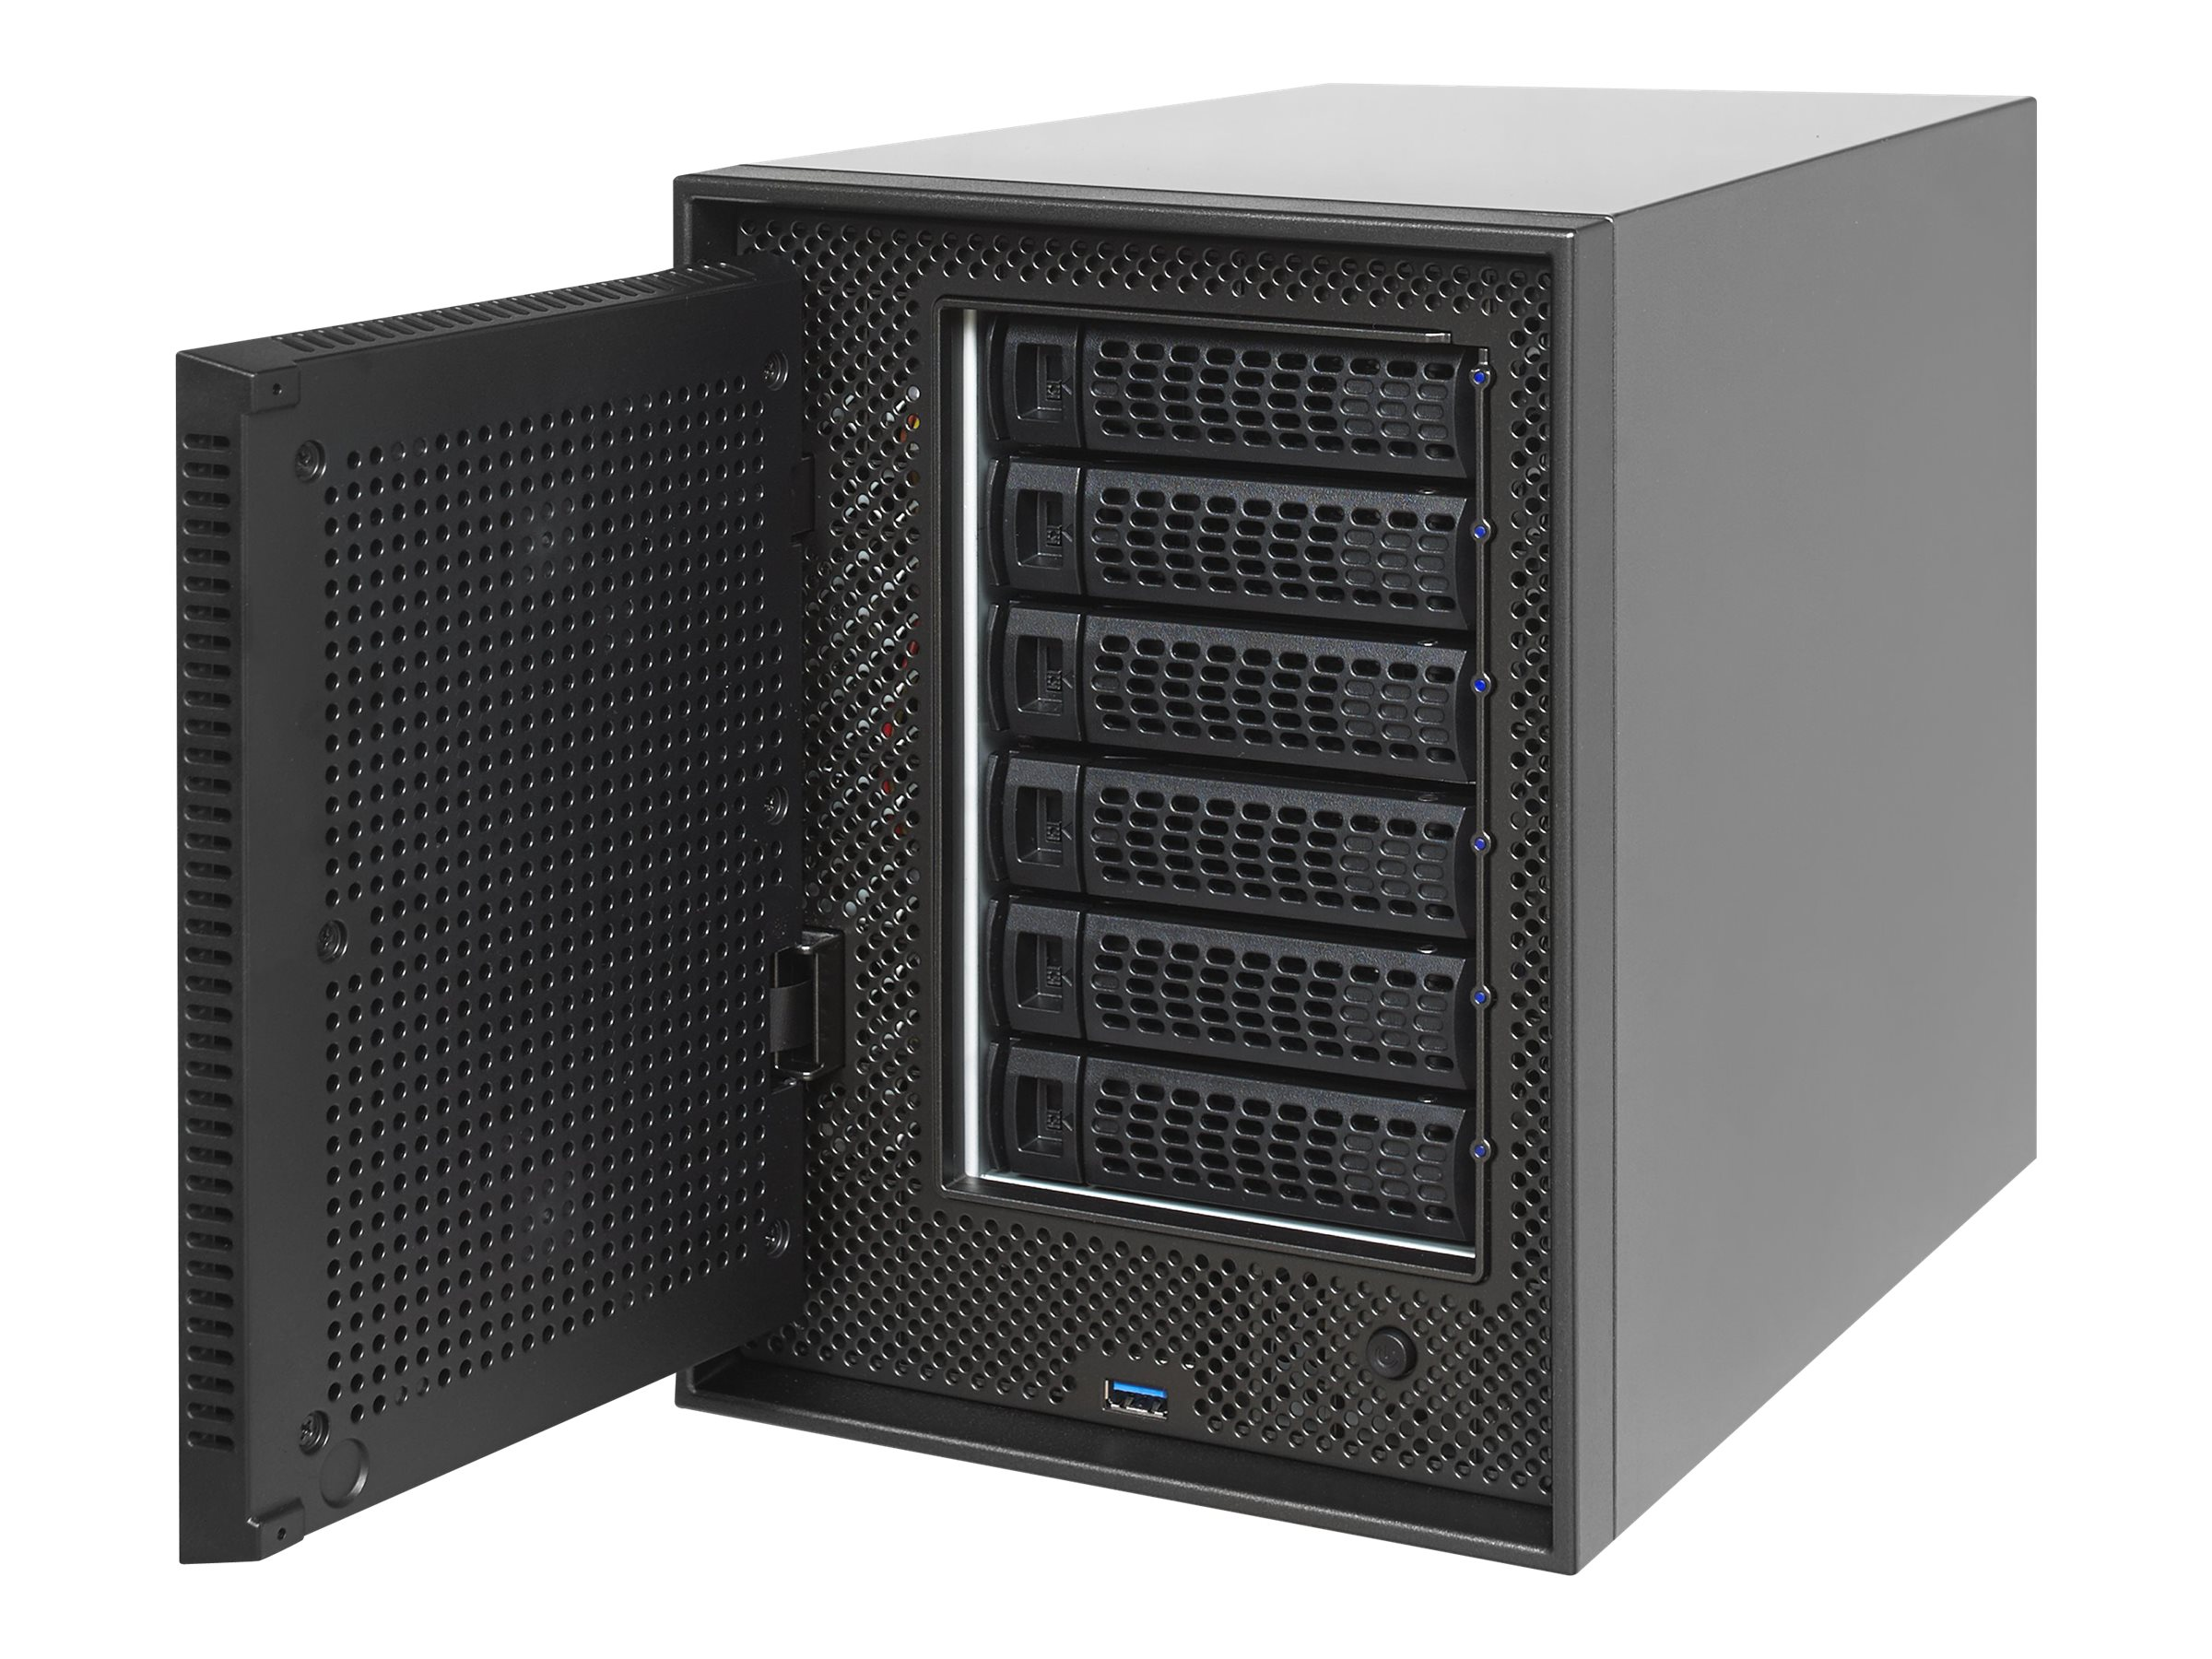 Netgear ReadyNAS 626X 6-Bay Network Storage w  Xeon Quad-Core Server Processor & 6X6TB Hard Drives, RN626XE6-100NES